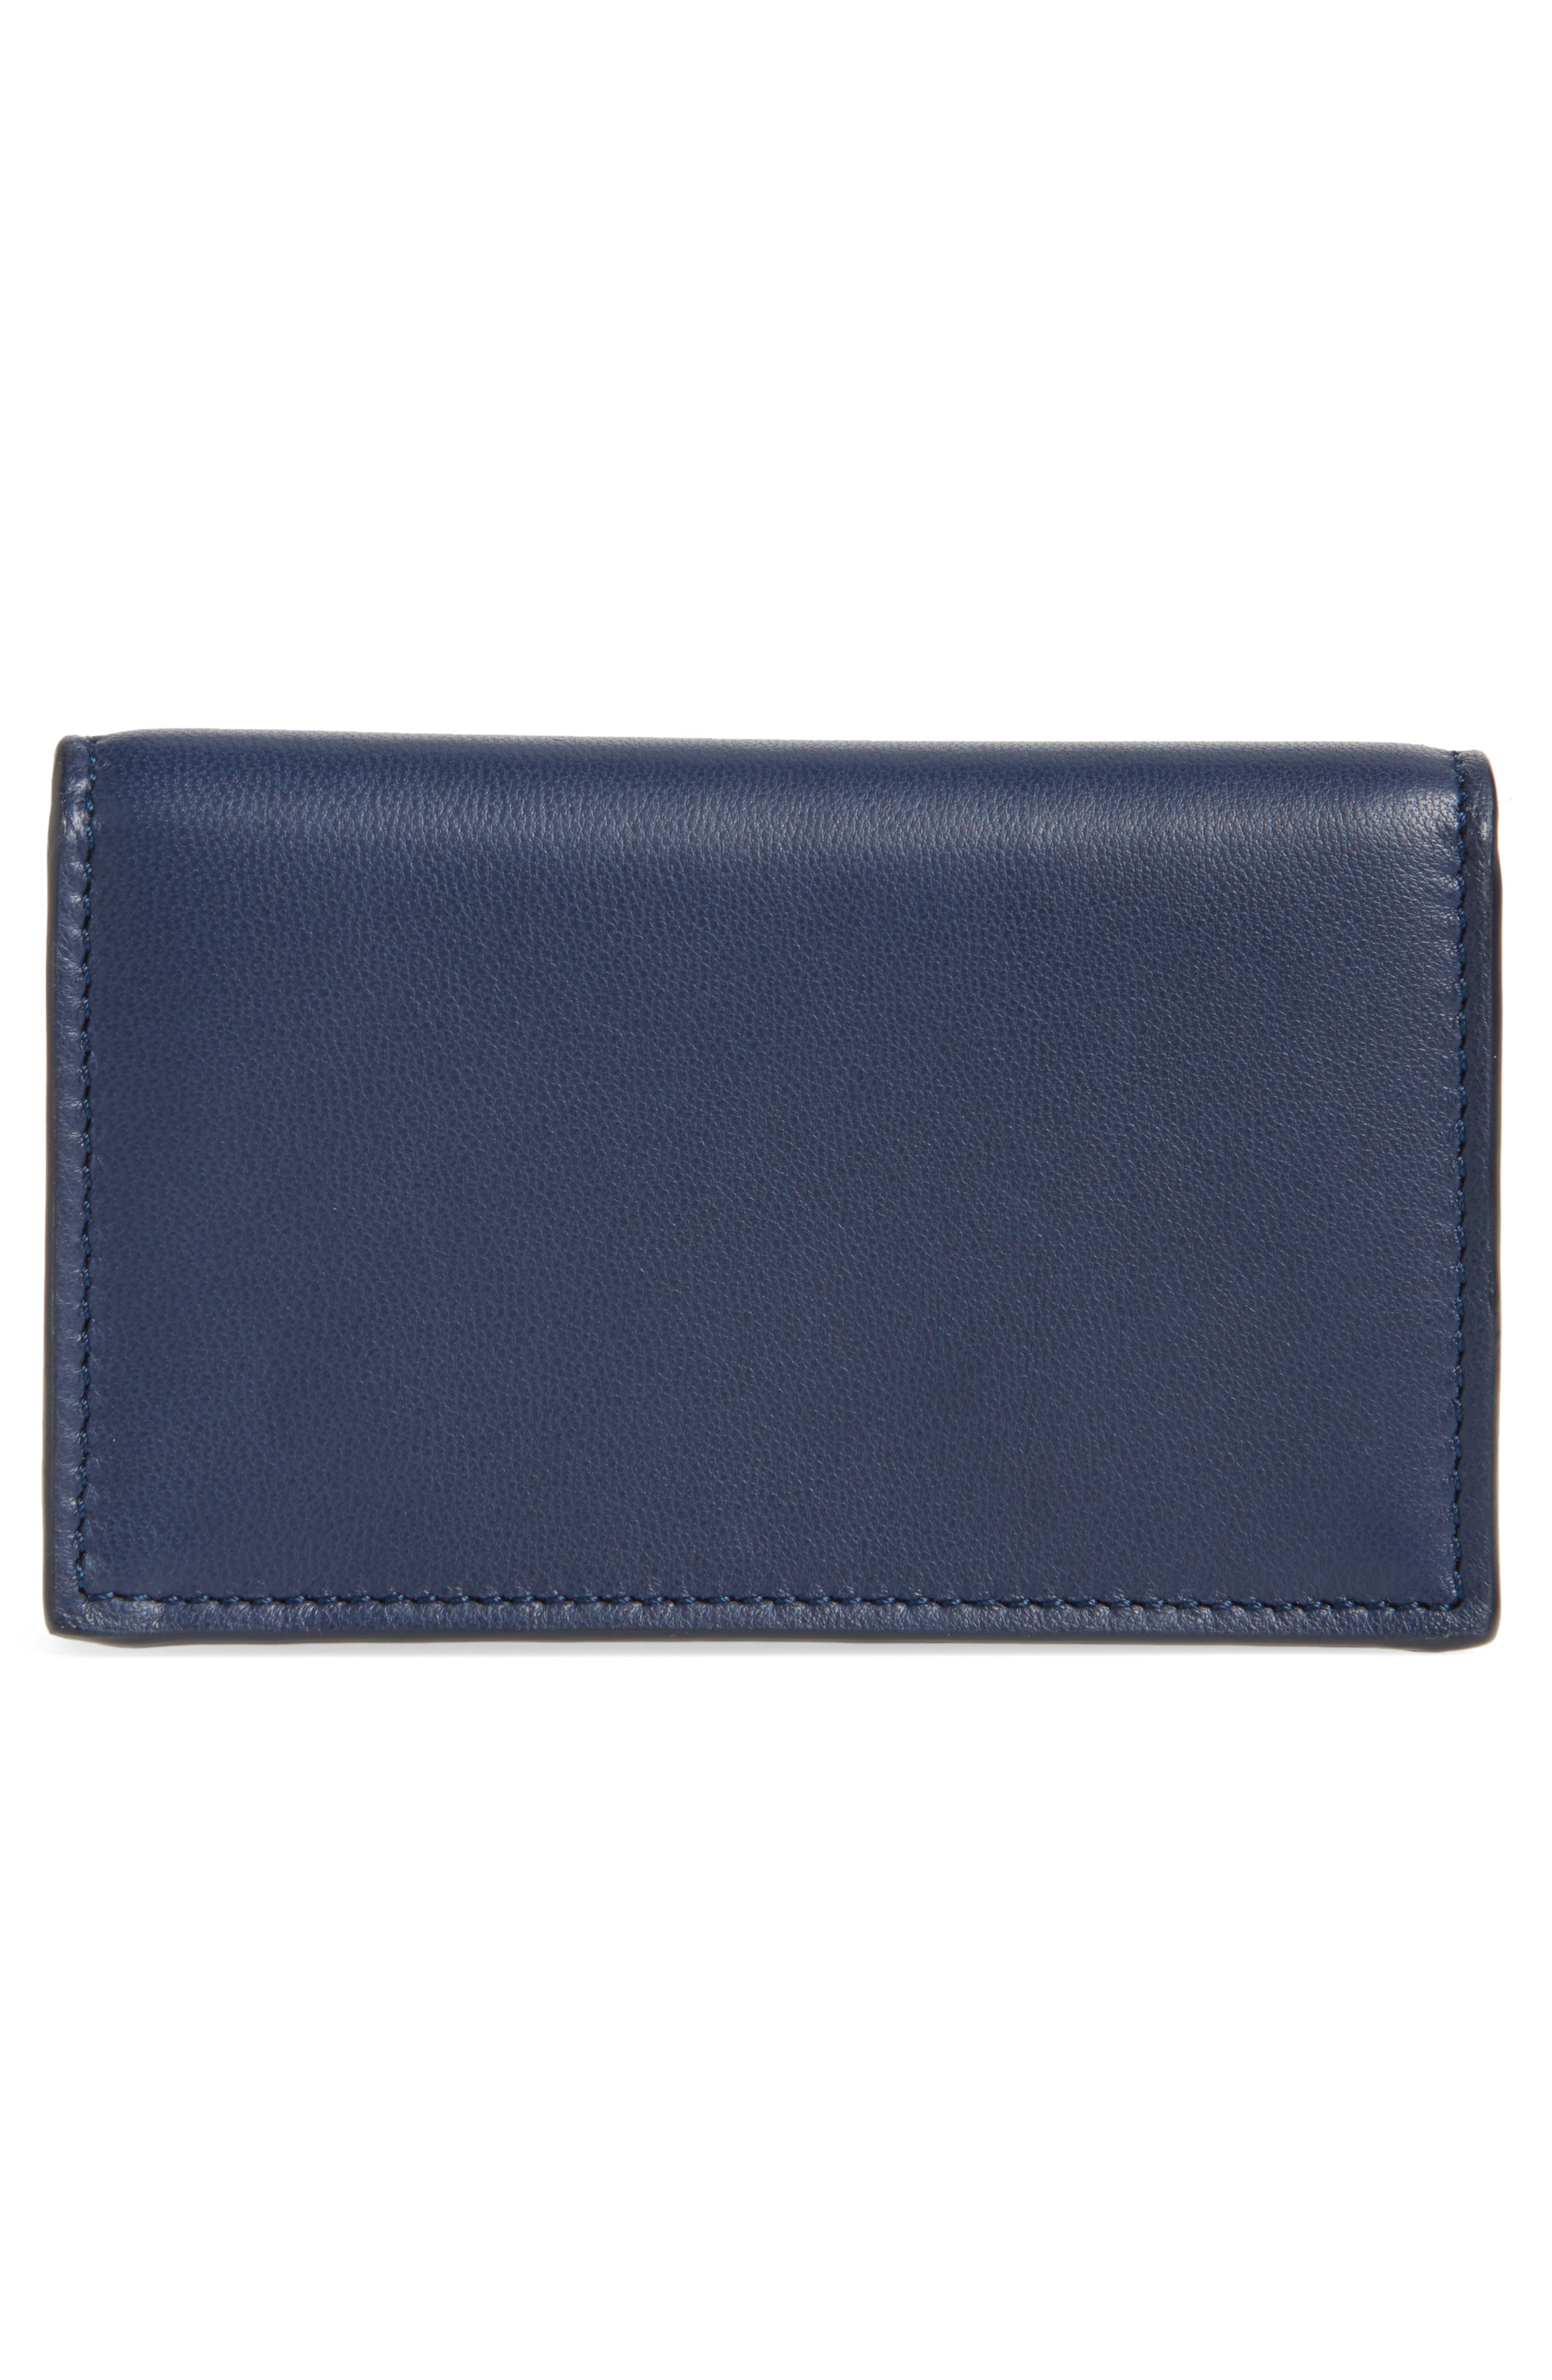 Calfskin Leather Business Card Case,                             Alternate thumbnail 2, color,                             Navy